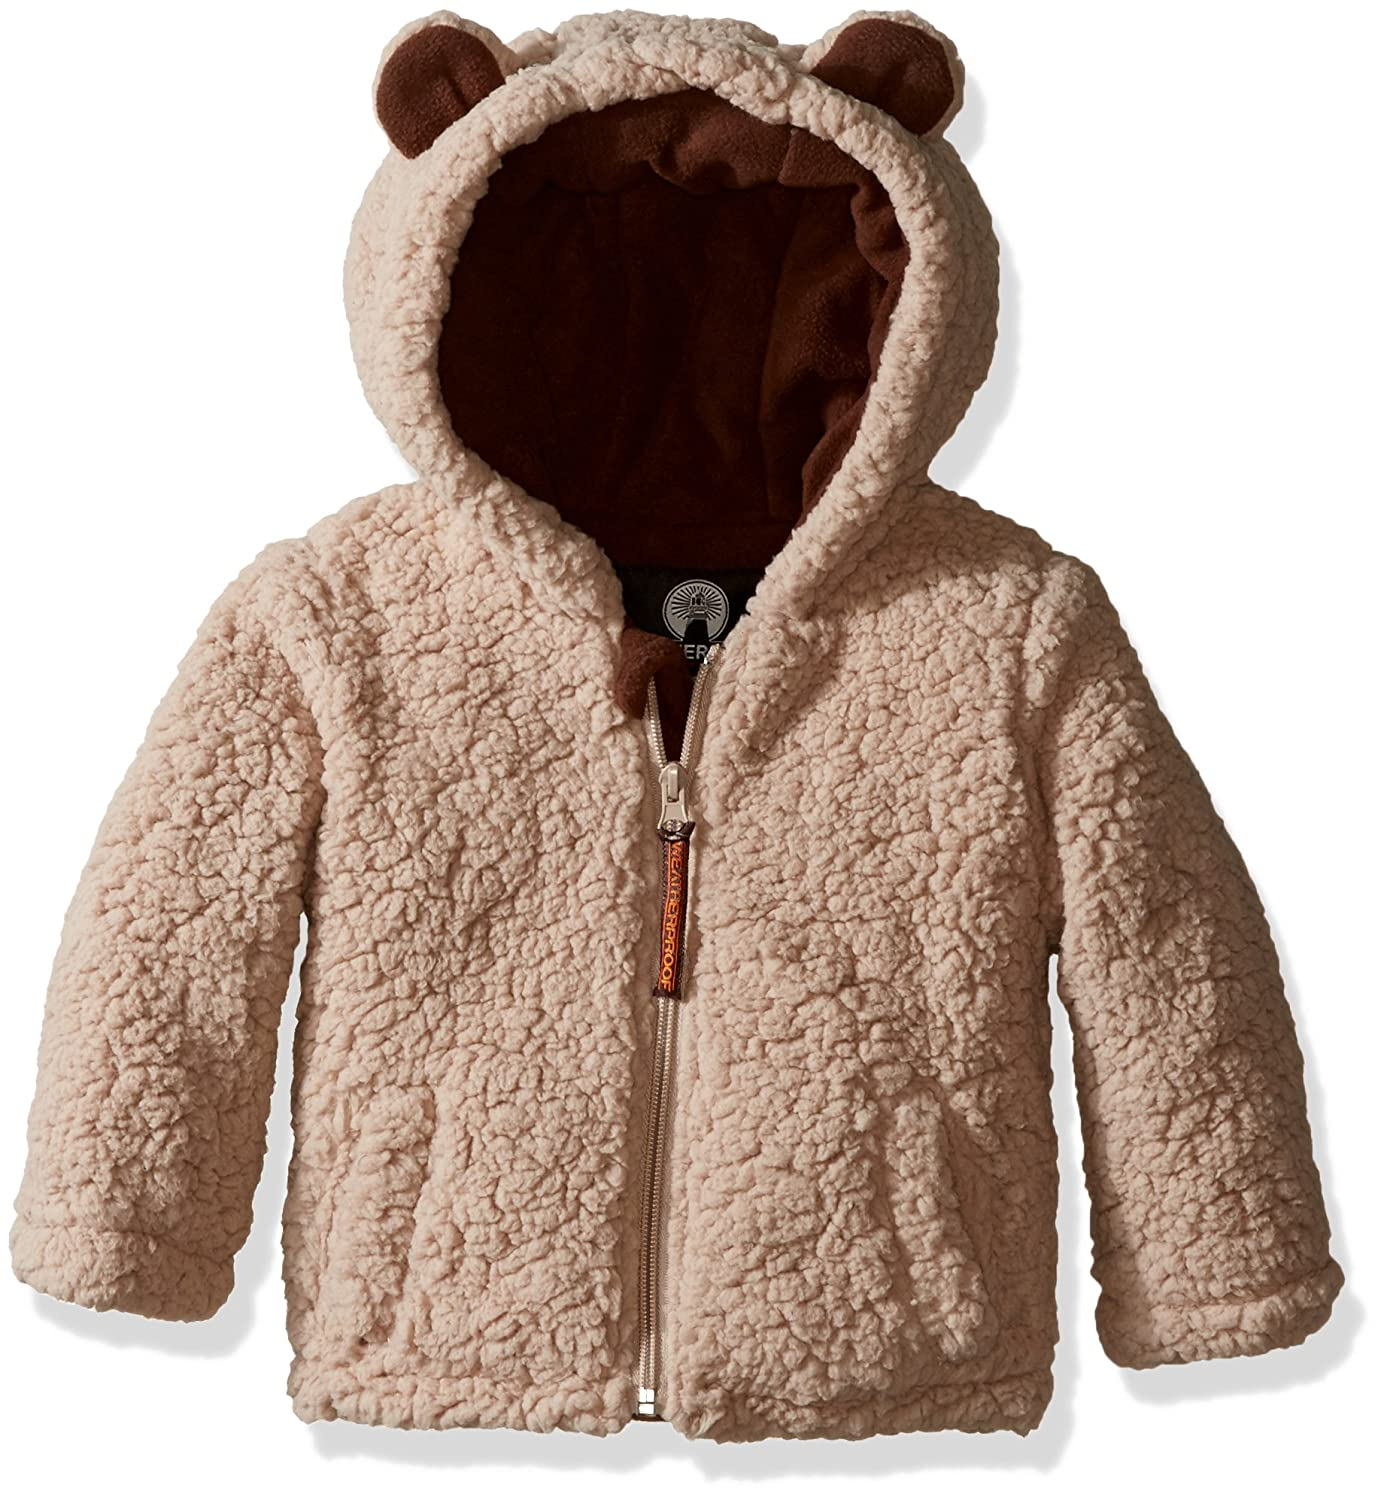 Weatherproof Baby Fashion Outerwear Jacket (More Styles Available)